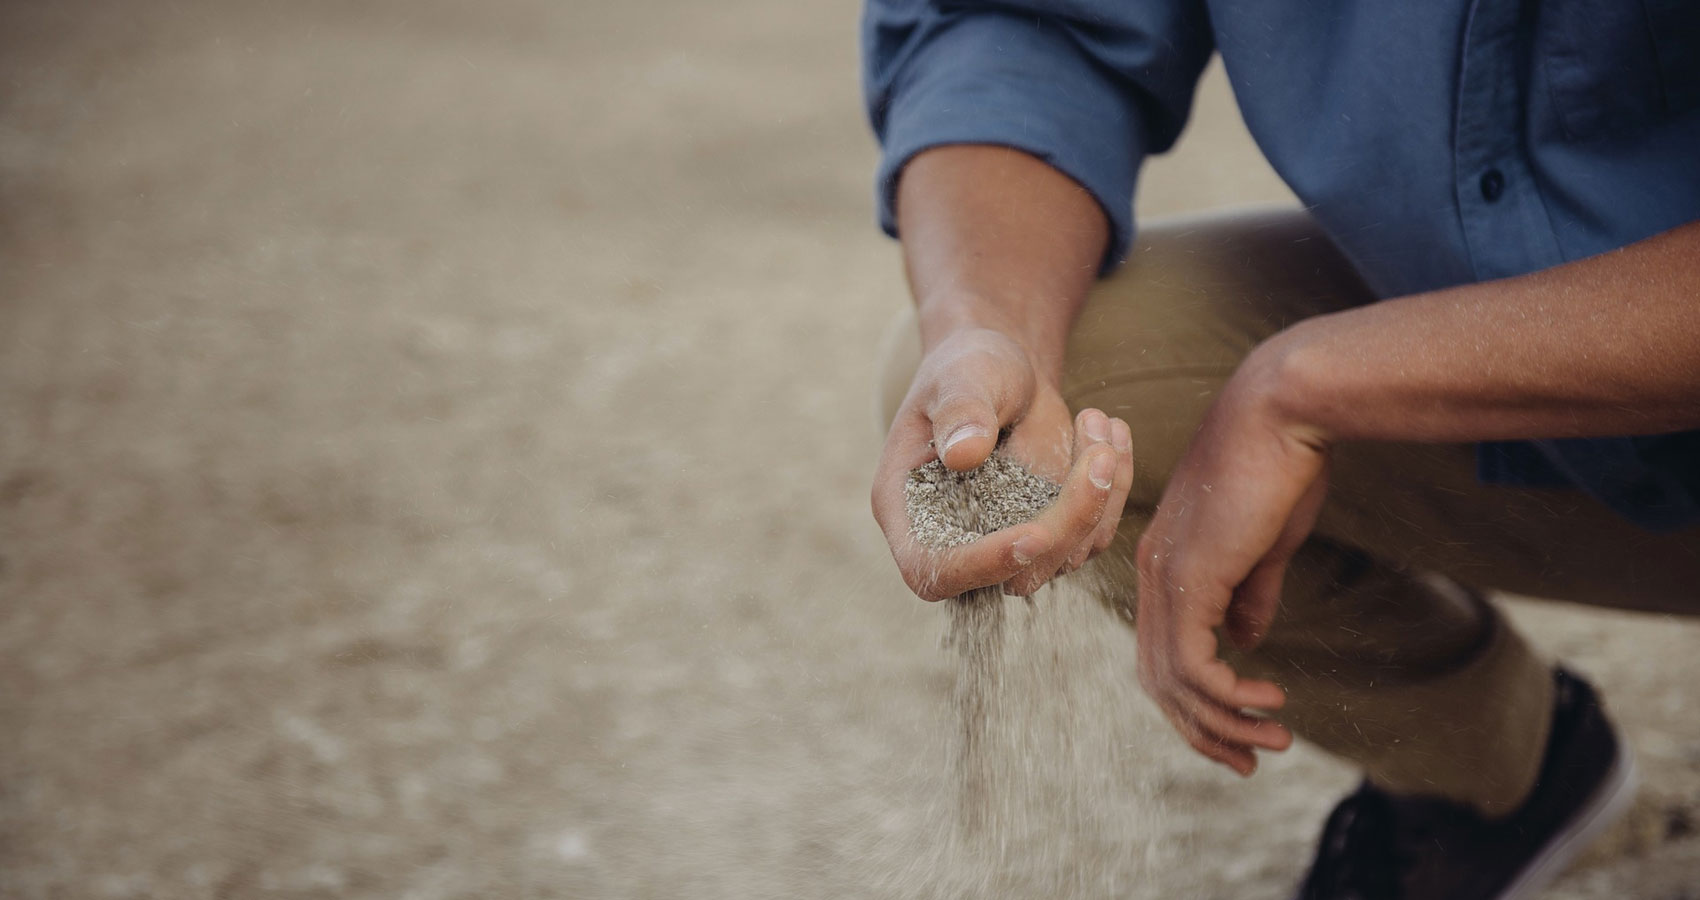 Carving His Name In Sand, written by Stanley Wilkin at Spillwords.com